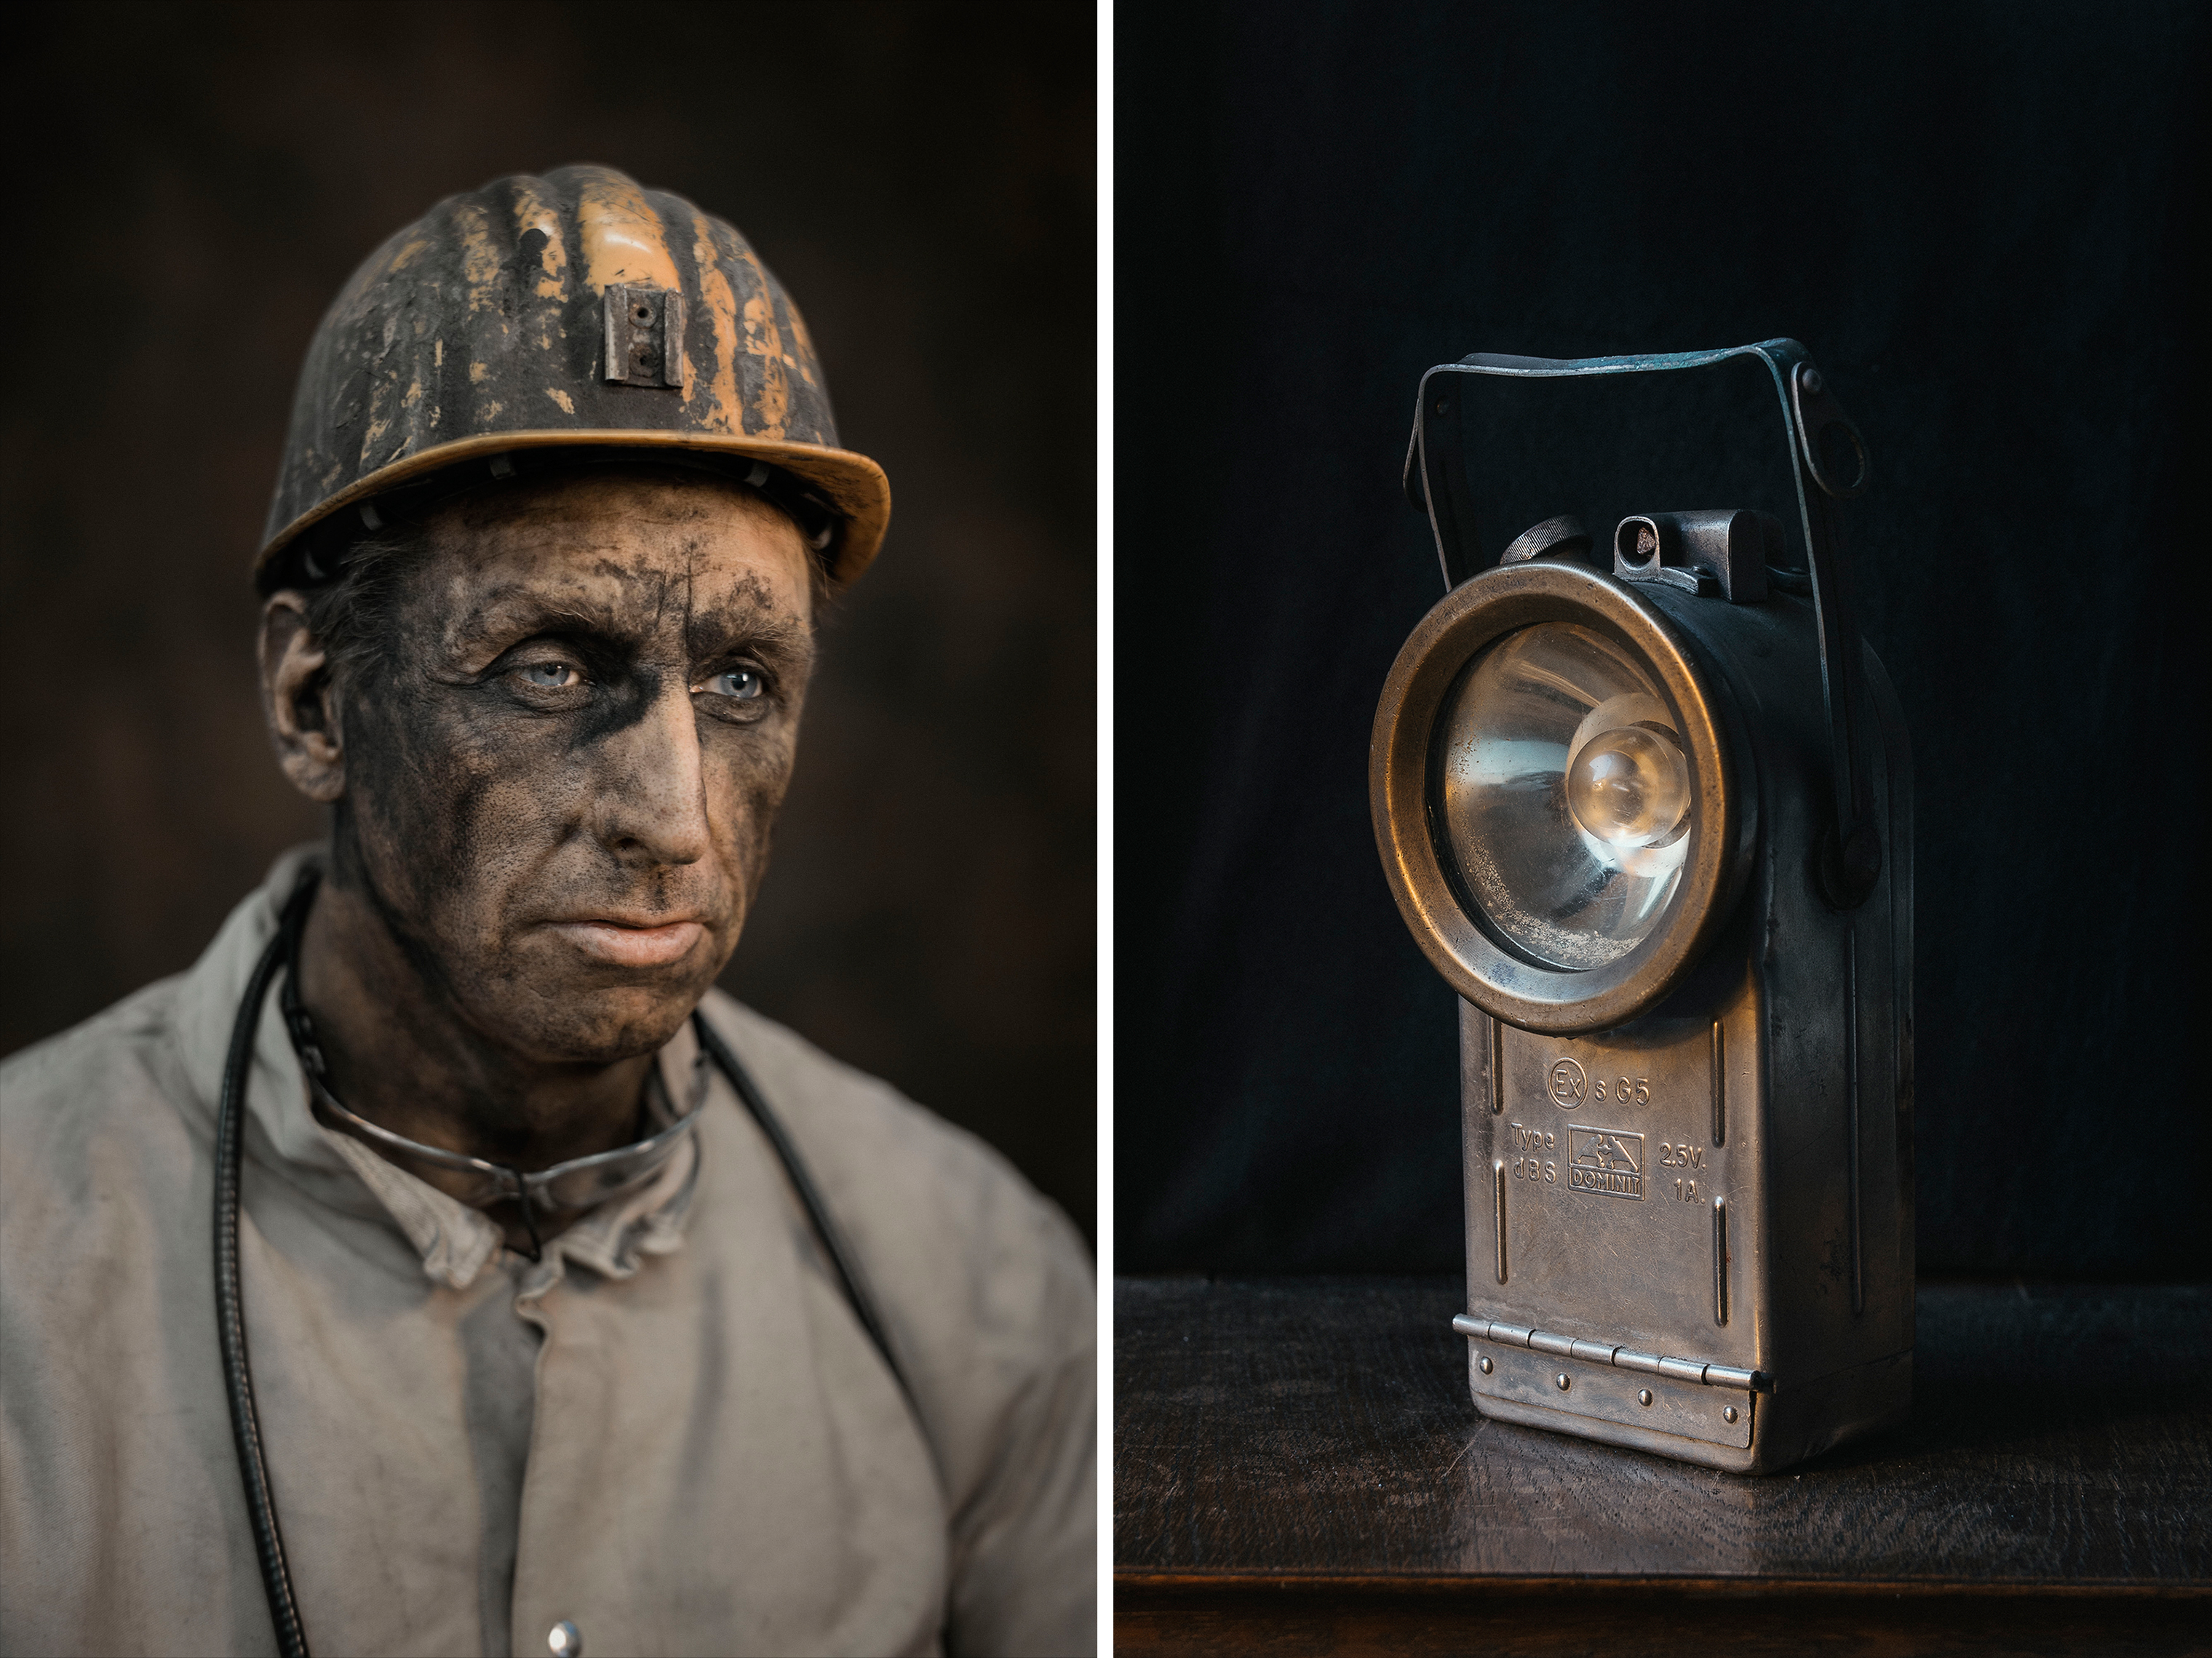 Mike Pallenberg, a supervisor, in February; an old pit lamp, designed to operate in air that may contain dust or gas.